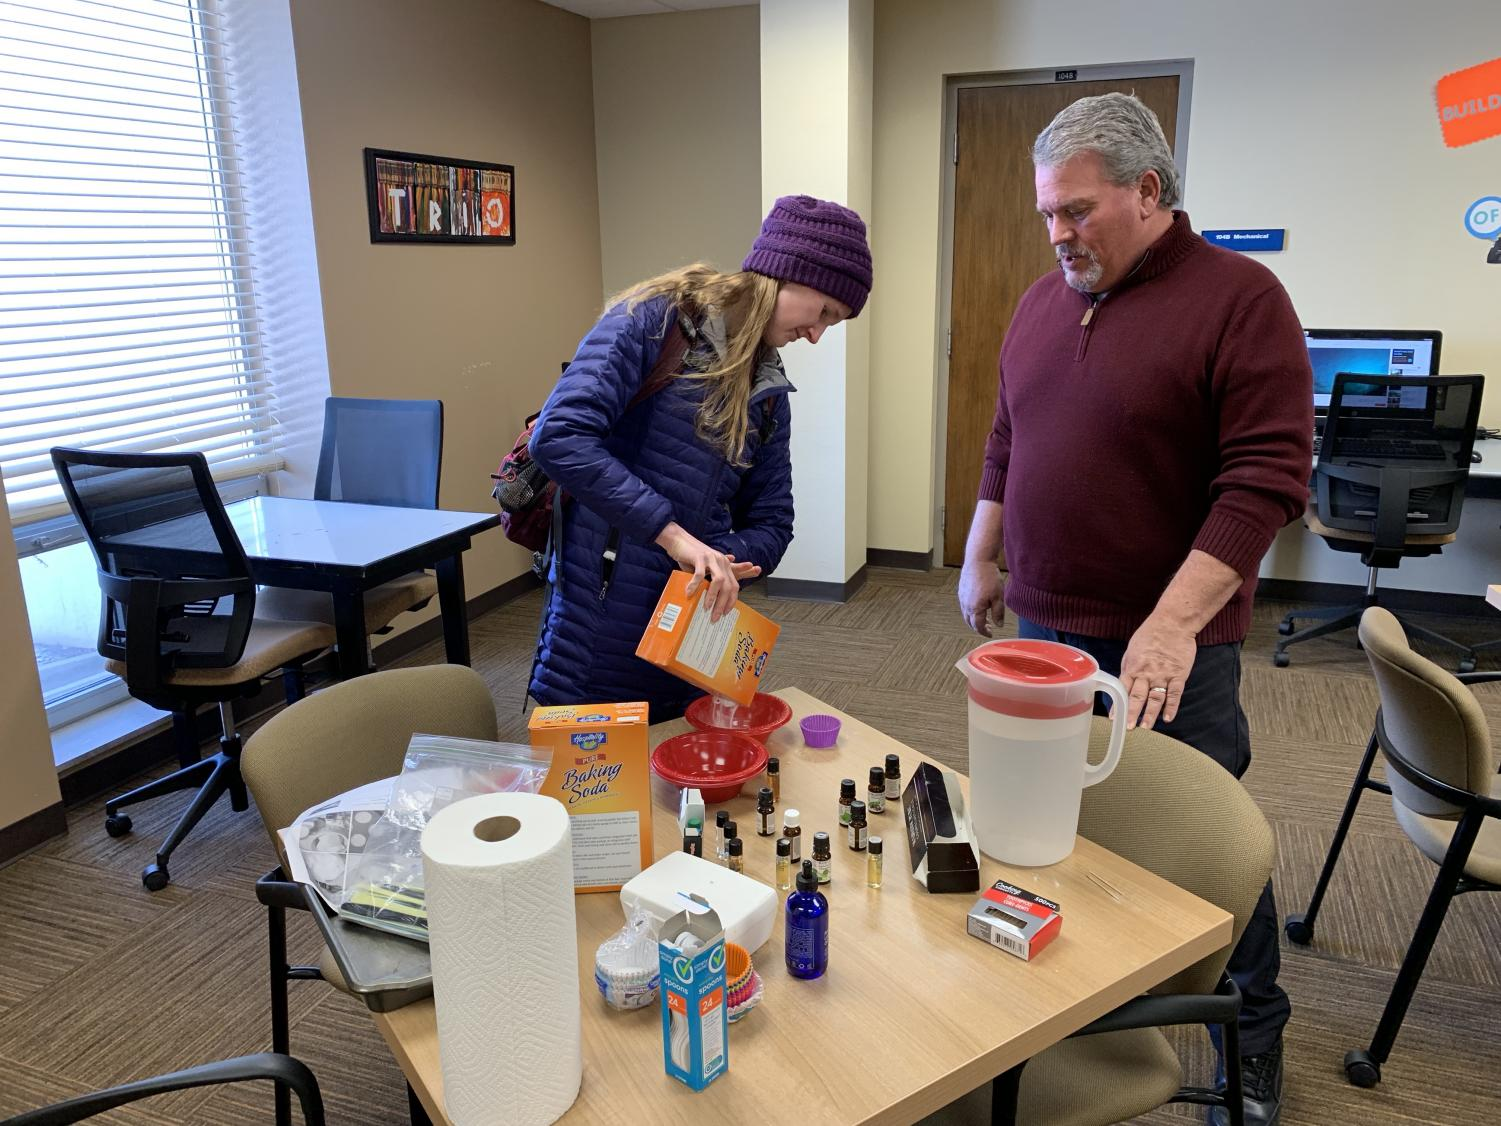 Kristina Rice, junior family and consumer sciences education major, participates in making a bath bomb during TRIO National Relaxation Day event with help from TRIO Program Director, Jeff Vostad